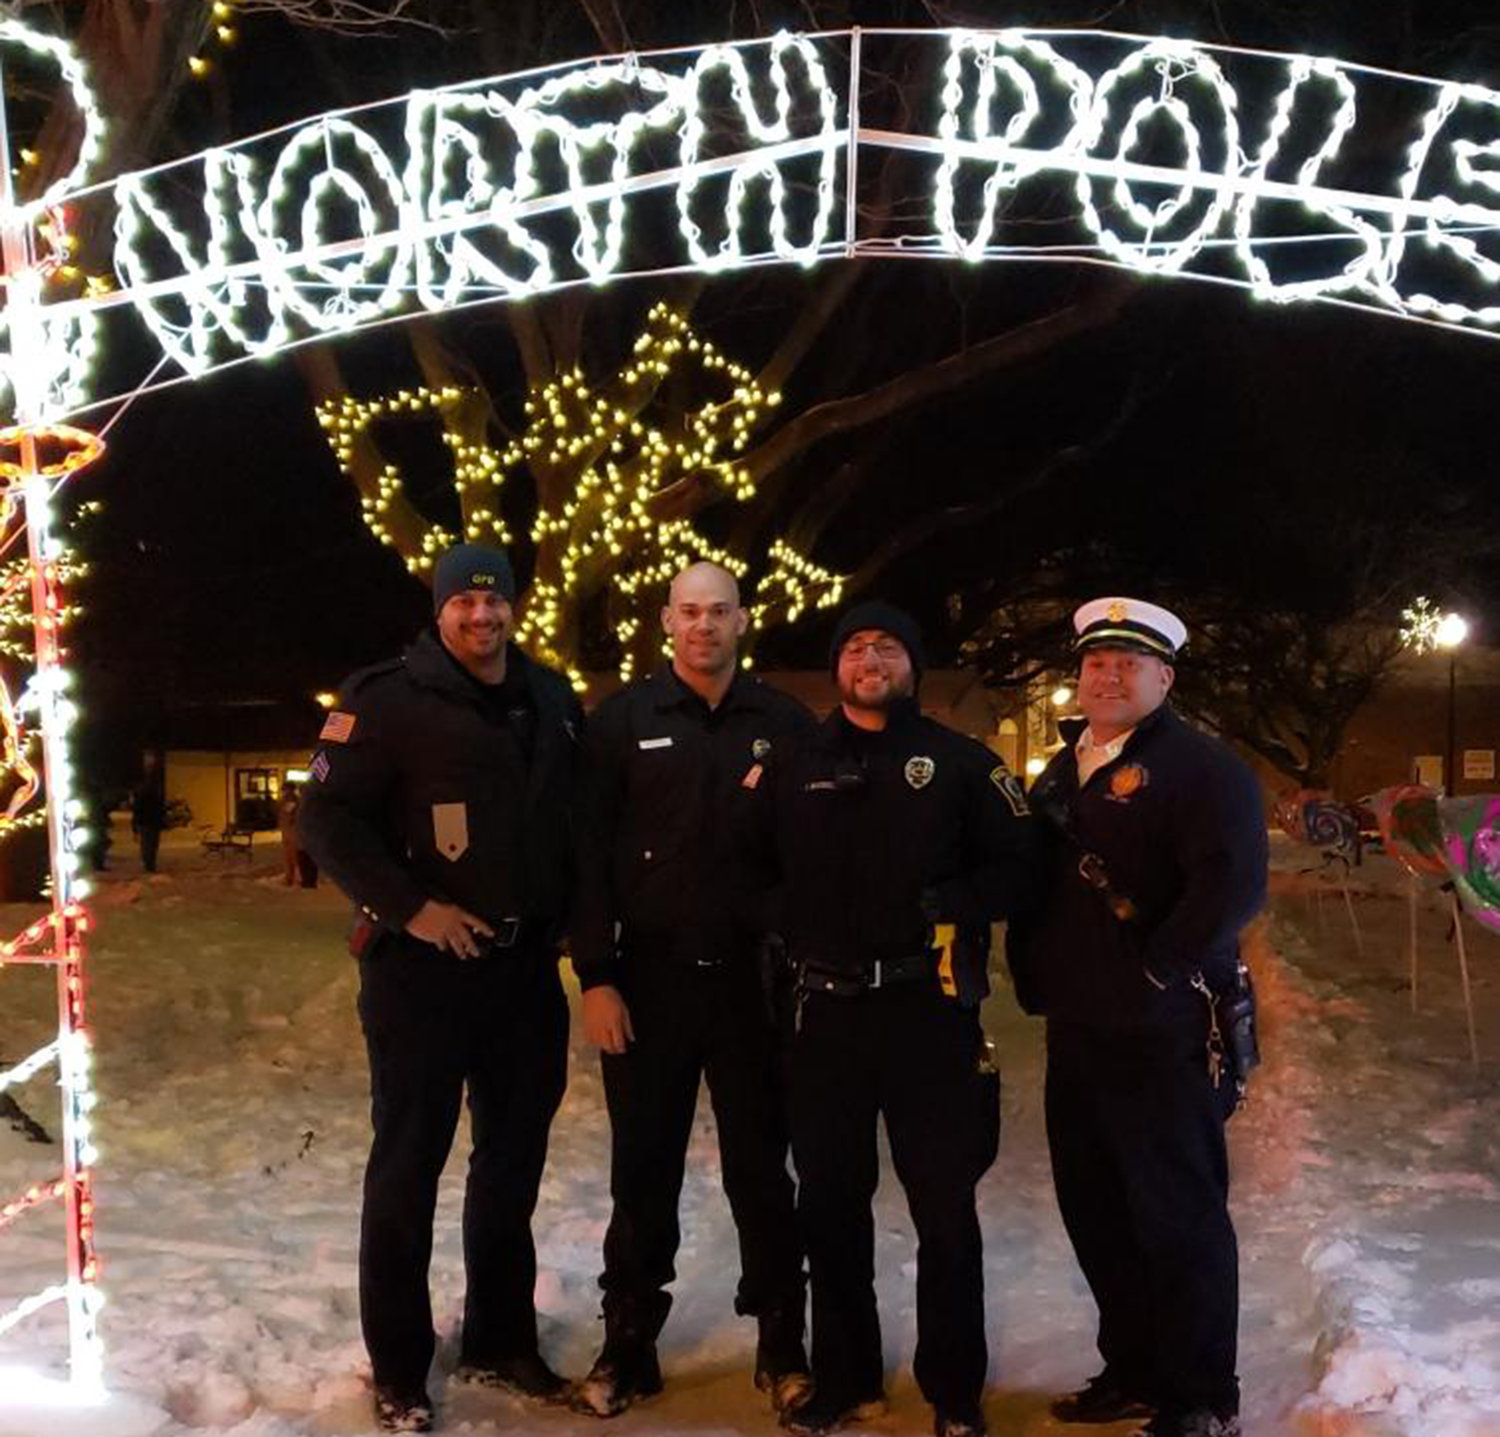 HOLIDAY HEROES — The Oneida City Police Department and Oneida City Fire Department joins in for the holiday festivities at the Oneida Christmas Story Downtown Stroll on Sunday, Dec. 1.